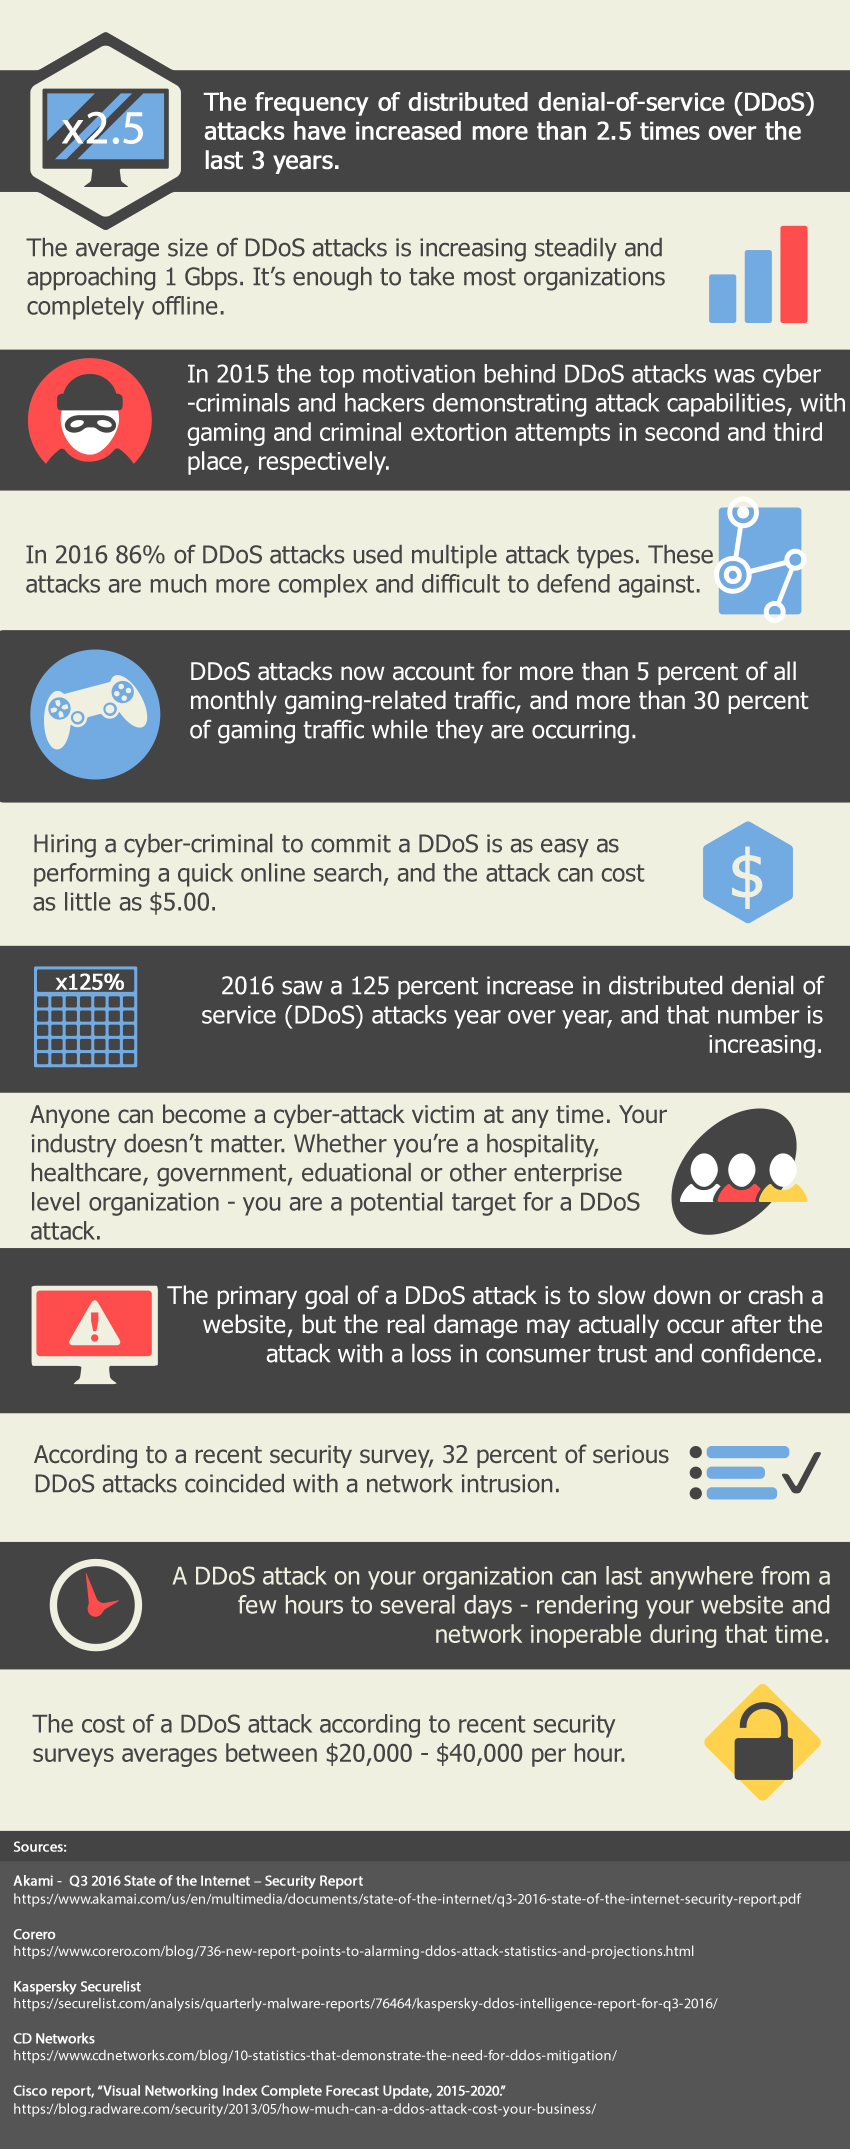 ddos_stats_leaders_need_know_infographic.png